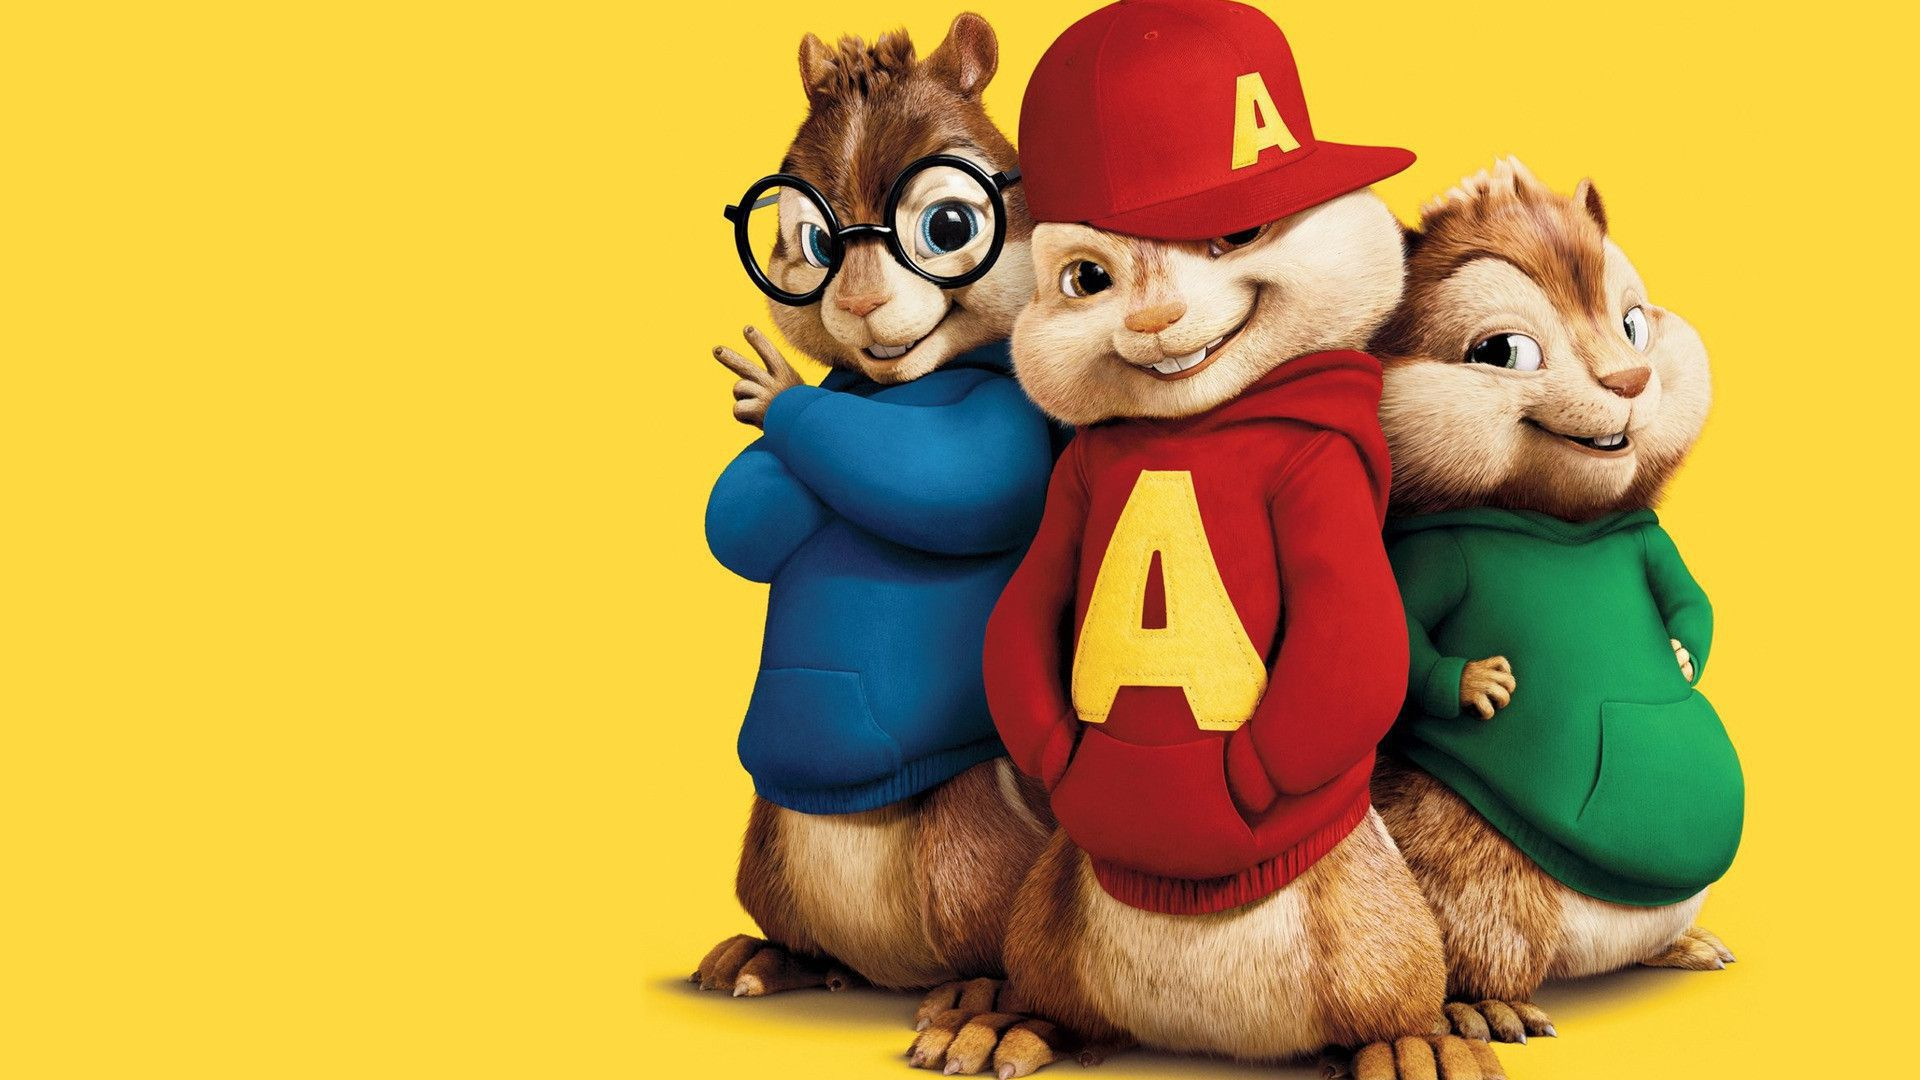 Alvin And The Chipmunks For Desktop